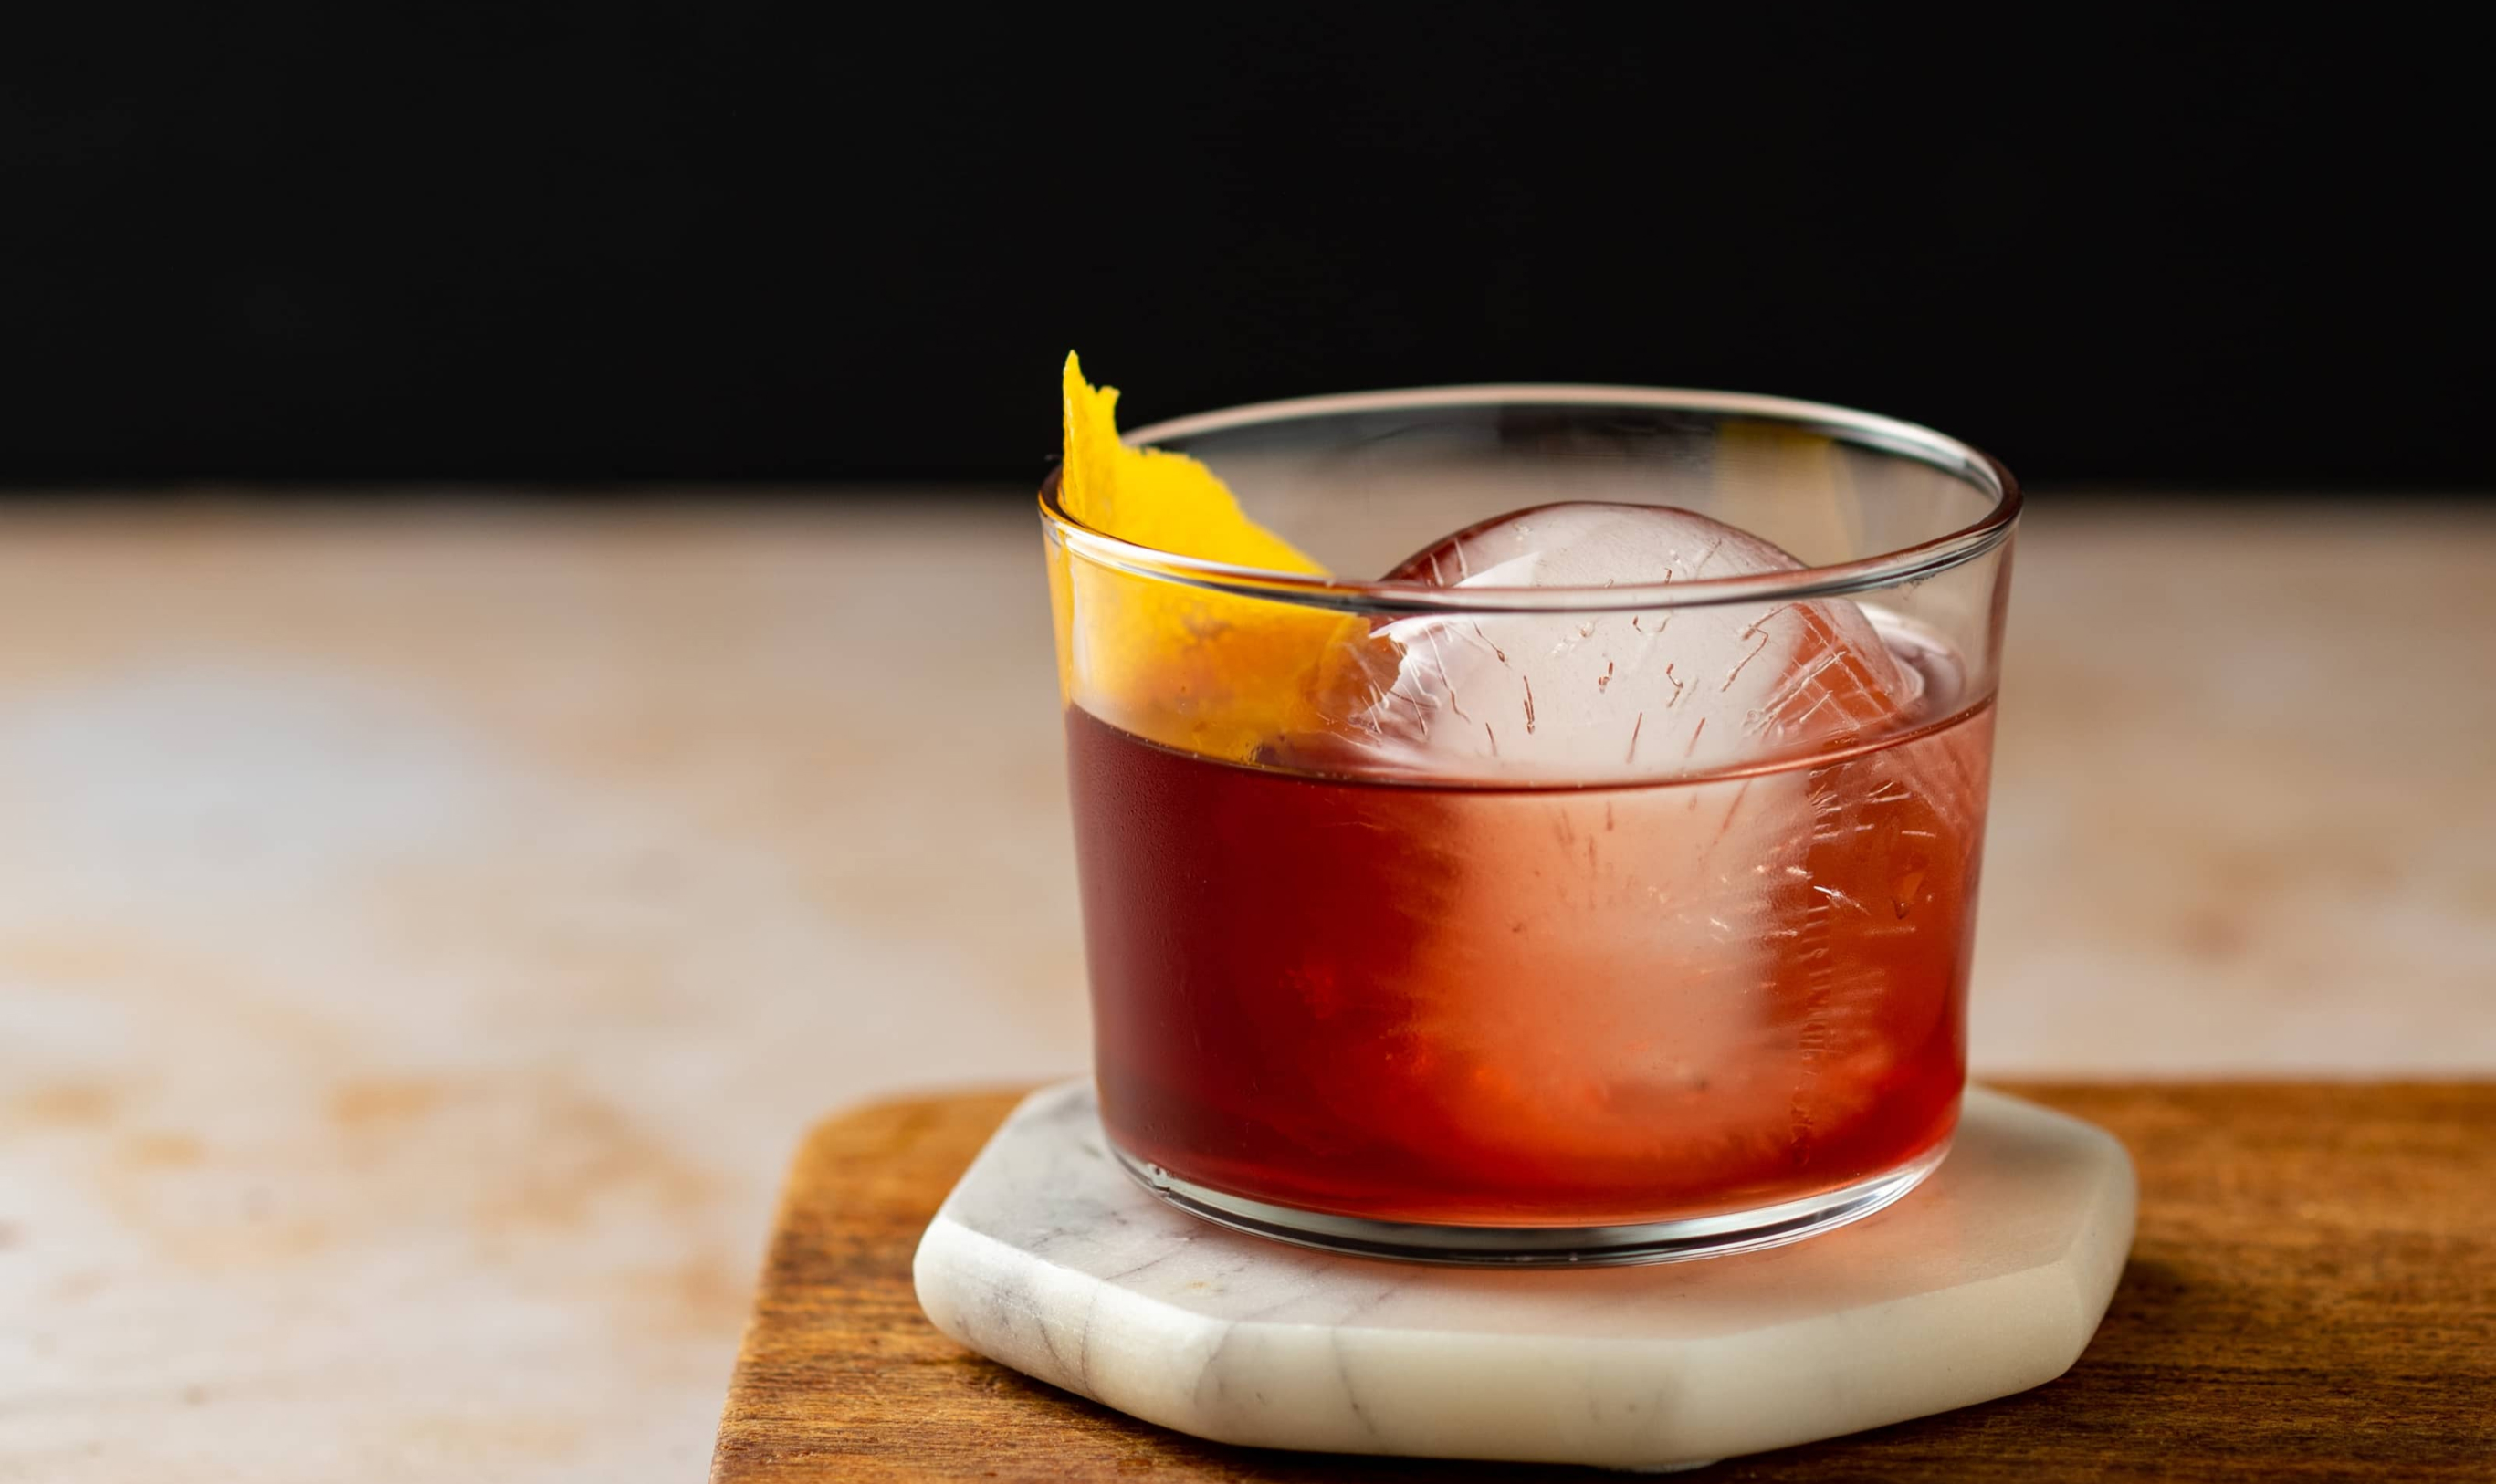 A blueberry negroni against a black back drop